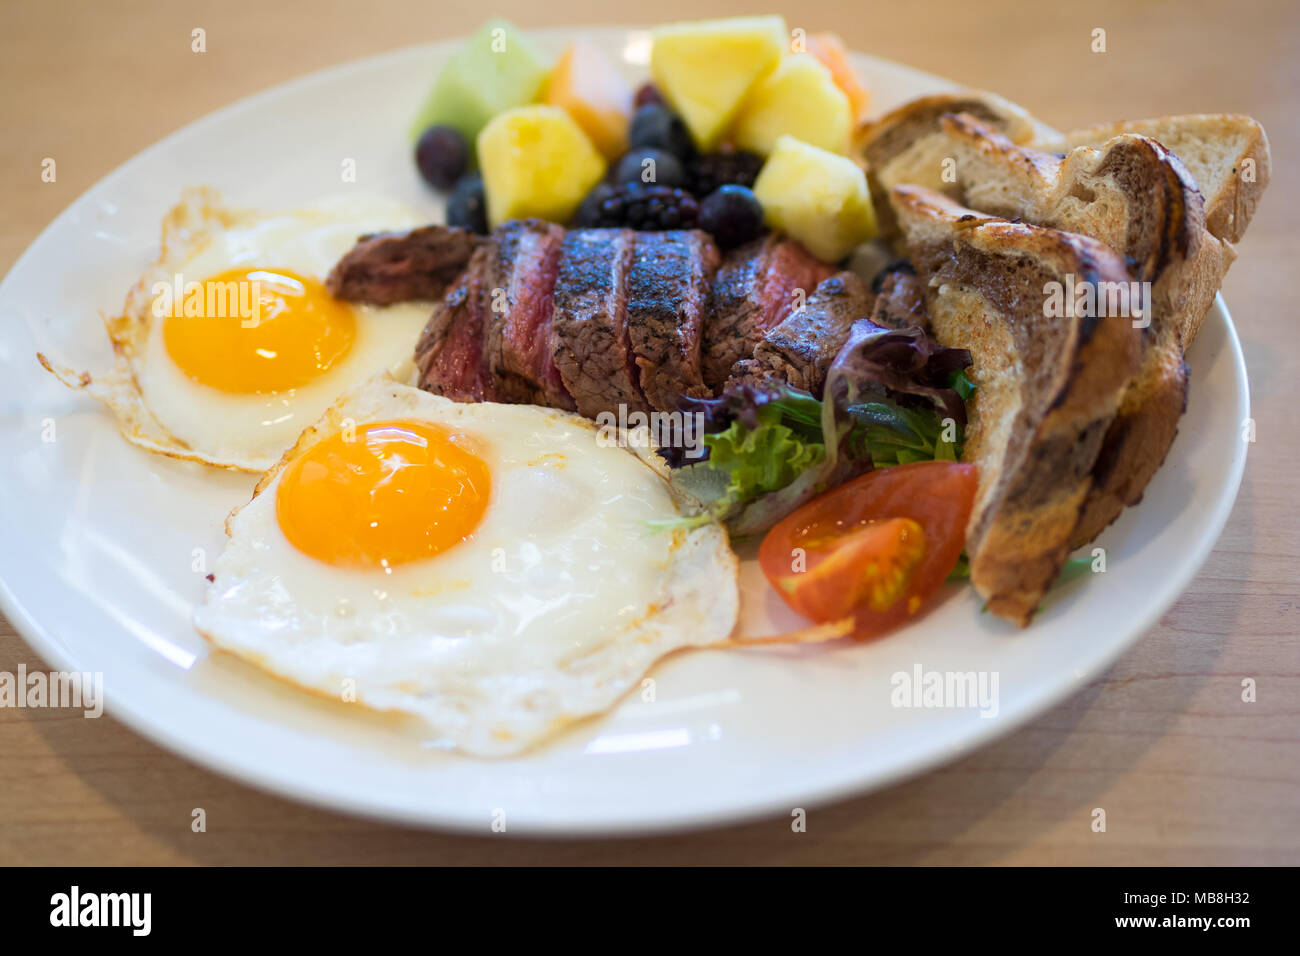 Steak eggs for breakfast at Hometown Diner in Saskatoon, Canada. Medium rare flank steak, sunny side up eggs, marble rye toast, and fruit pictured. - Stock Image